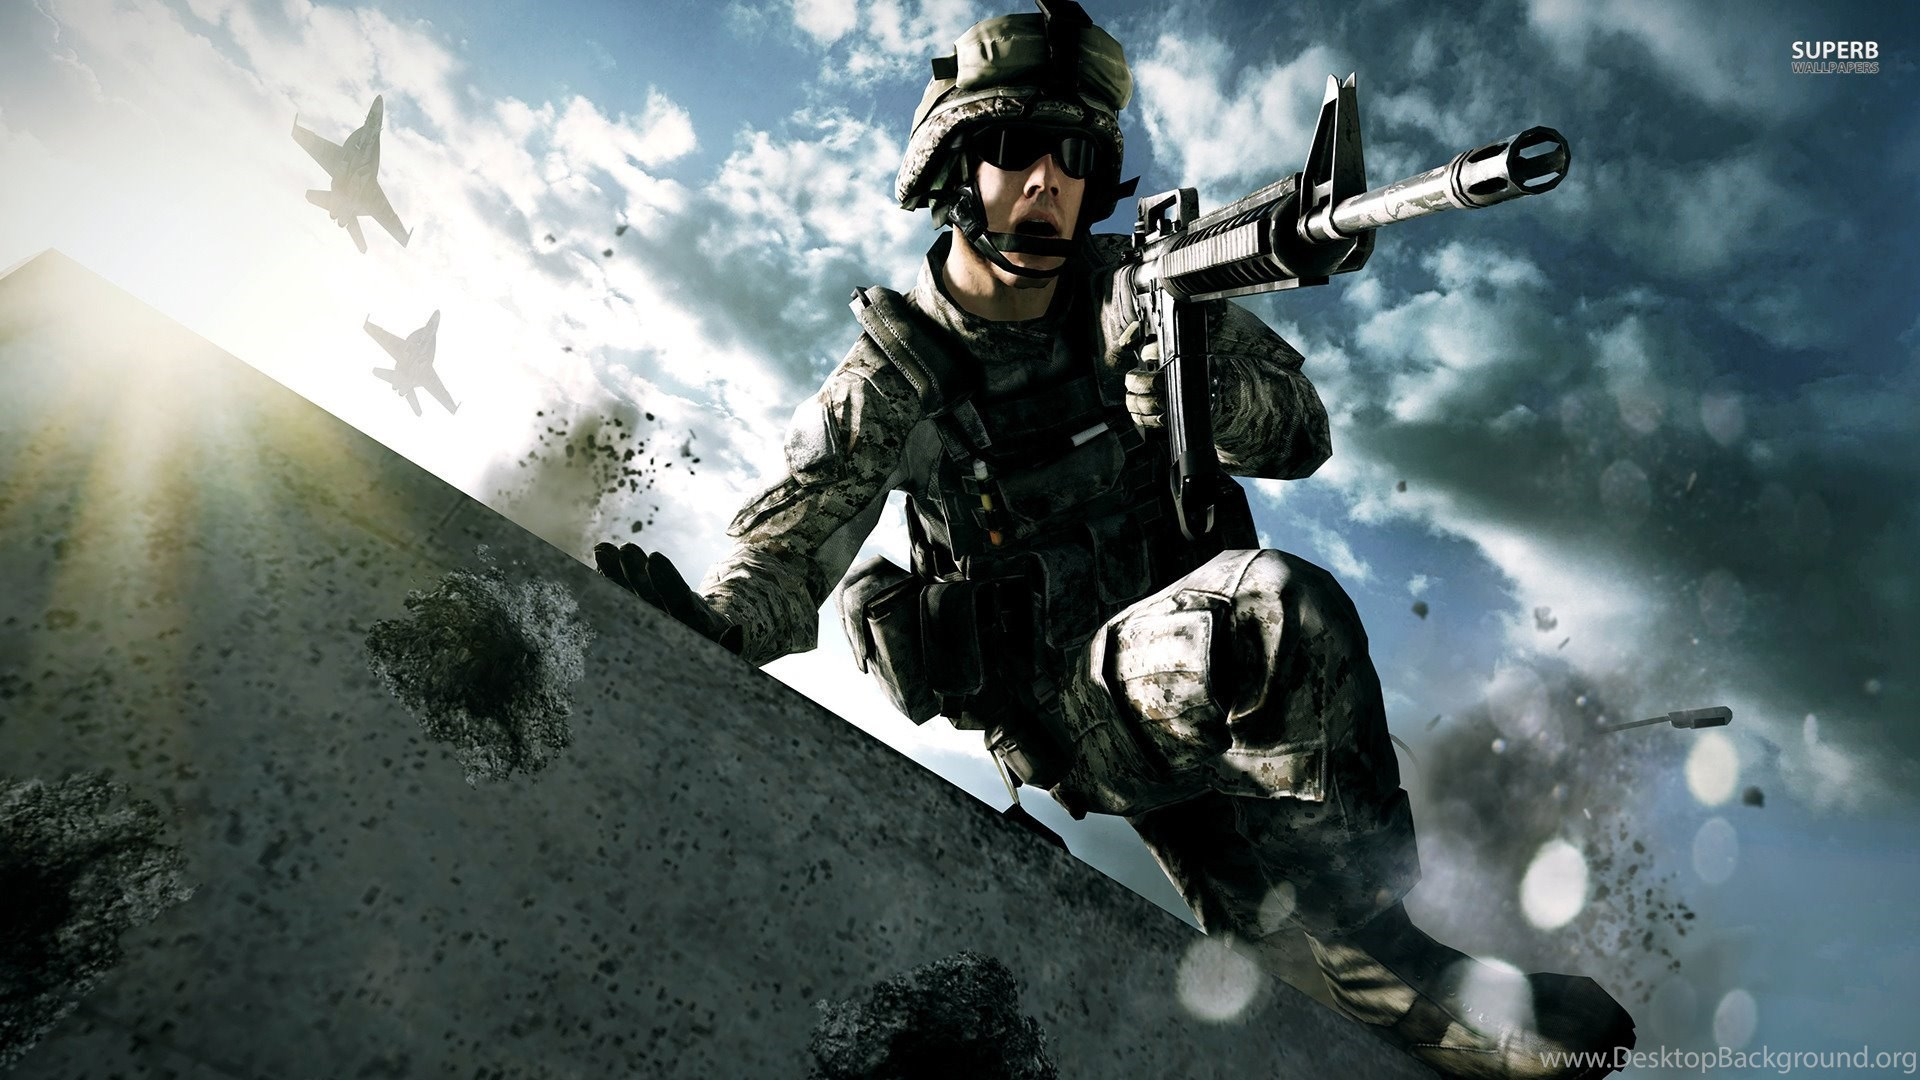 fonds d'écran battlefield 4 : tous les wallpapers battlefield 4